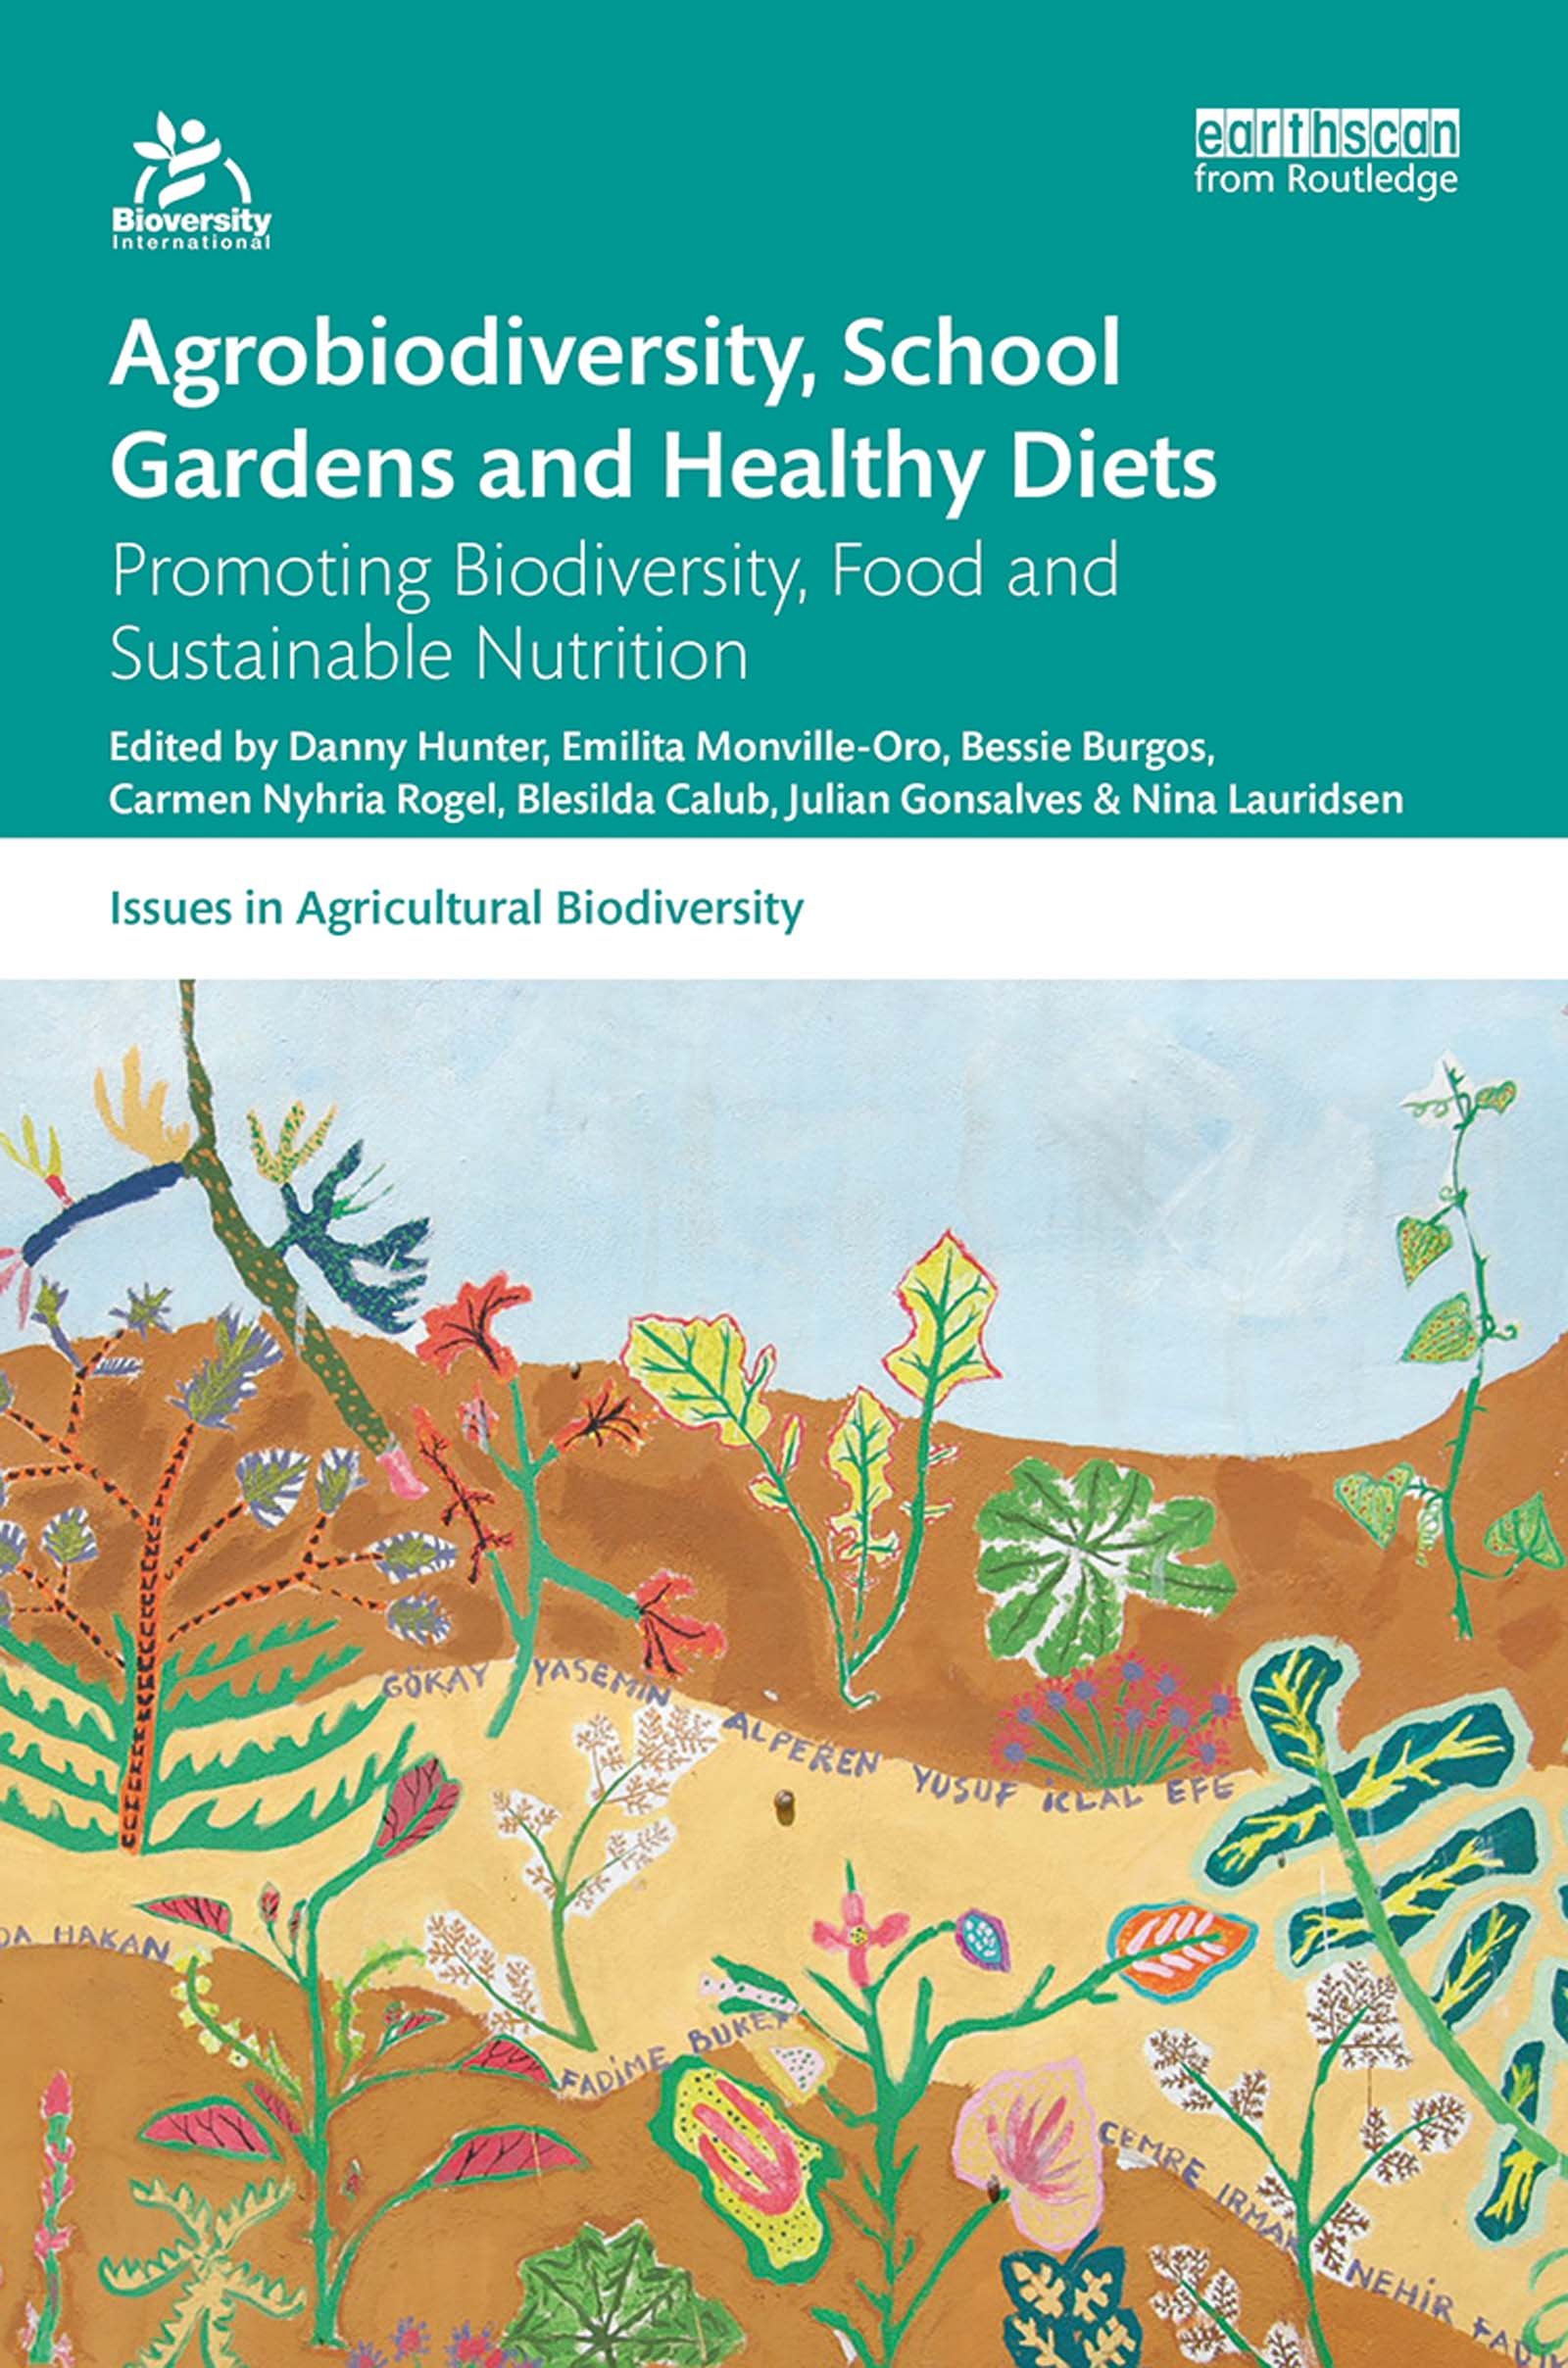 The impact of school gardens on nutrition outcomes in low-income countries